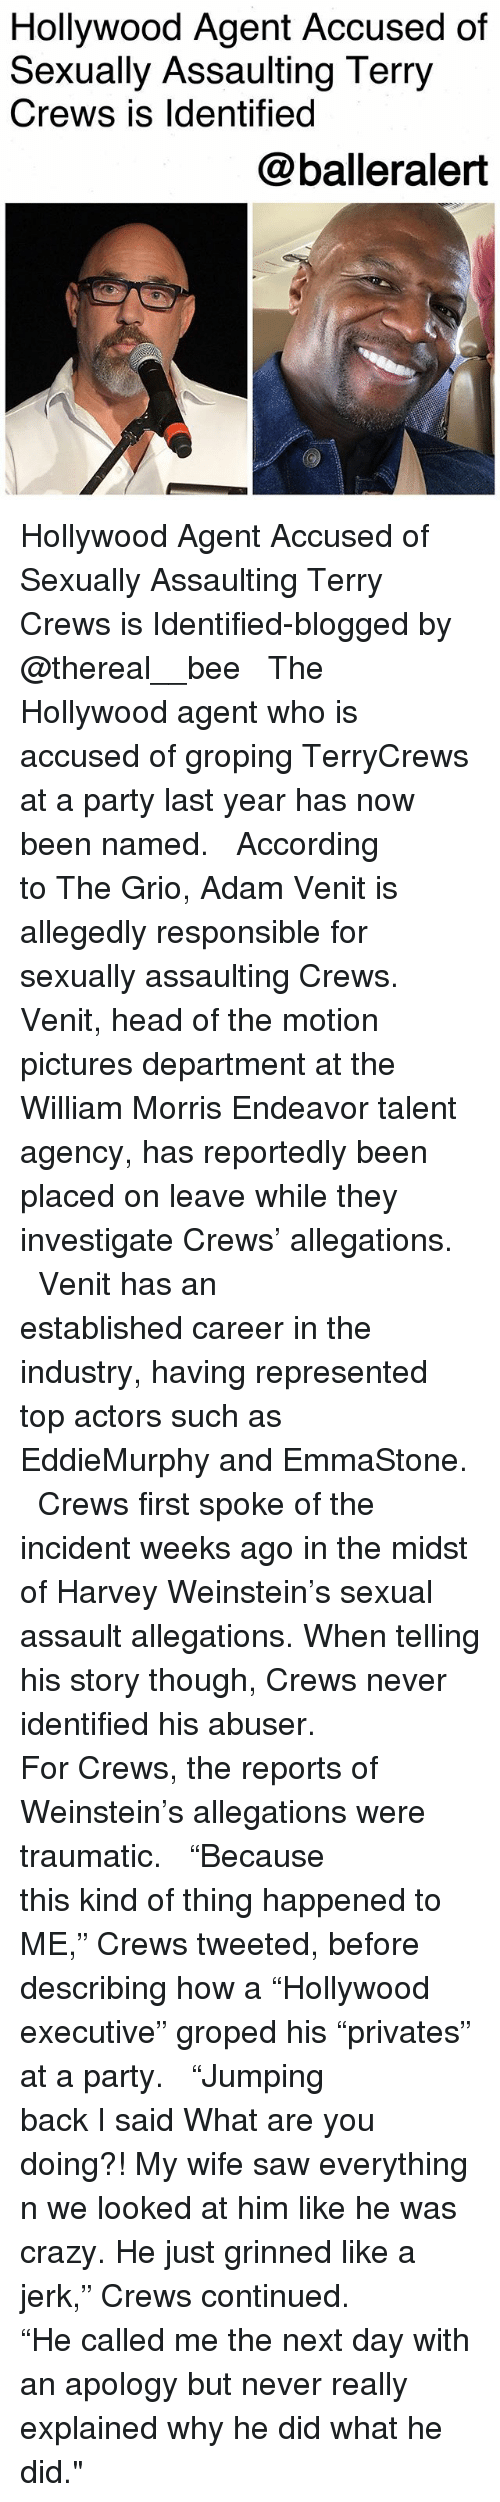 """Crazy, Head, and Memes: Hollywood Agent Accused of  Sexually Assaulting Terry  Crews is ldentified  @balleralert Hollywood Agent Accused of Sexually Assaulting Terry Crews is Identified-blogged by @thereal__bee ⠀⠀⠀⠀⠀⠀⠀⠀⠀ ⠀⠀ The Hollywood agent who is accused of groping TerryCrews at a party last year has now been named. ⠀⠀⠀⠀⠀⠀⠀⠀⠀ ⠀⠀ According to The Grio, Adam Venit is allegedly responsible for sexually assaulting Crews. Venit, head of the motion pictures department at the William Morris Endeavor talent agency, has reportedly been placed on leave while they investigate Crews' allegations. ⠀⠀⠀⠀⠀⠀⠀⠀⠀ ⠀⠀ Venit has an established career in the industry, having represented top actors such as EddieMurphy and EmmaStone. ⠀⠀⠀⠀⠀⠀⠀⠀⠀ ⠀⠀ Crews first spoke of the incident weeks ago in the midst of Harvey Weinstein's sexual assault allegations. When telling his story though, Crews never identified his abuser. ⠀⠀⠀⠀⠀⠀⠀⠀⠀ ⠀⠀ For Crews, the reports of Weinstein's allegations were traumatic. ⠀⠀⠀⠀⠀⠀⠀⠀⠀ ⠀⠀ """"Because this kind of thing happened to ME,"""" Crews tweeted, before describing how a """"Hollywood executive"""" groped his """"privates"""" at a party. ⠀⠀⠀⠀⠀⠀⠀⠀⠀ ⠀⠀ """"Jumping back I said What are you doing?! My wife saw everything n we looked at him like he was crazy. He just grinned like a jerk,"""" Crews continued. ⠀⠀⠀⠀⠀⠀⠀⠀⠀ ⠀⠀ """"He called me the next day with an apology but never really explained why he did what he did."""""""